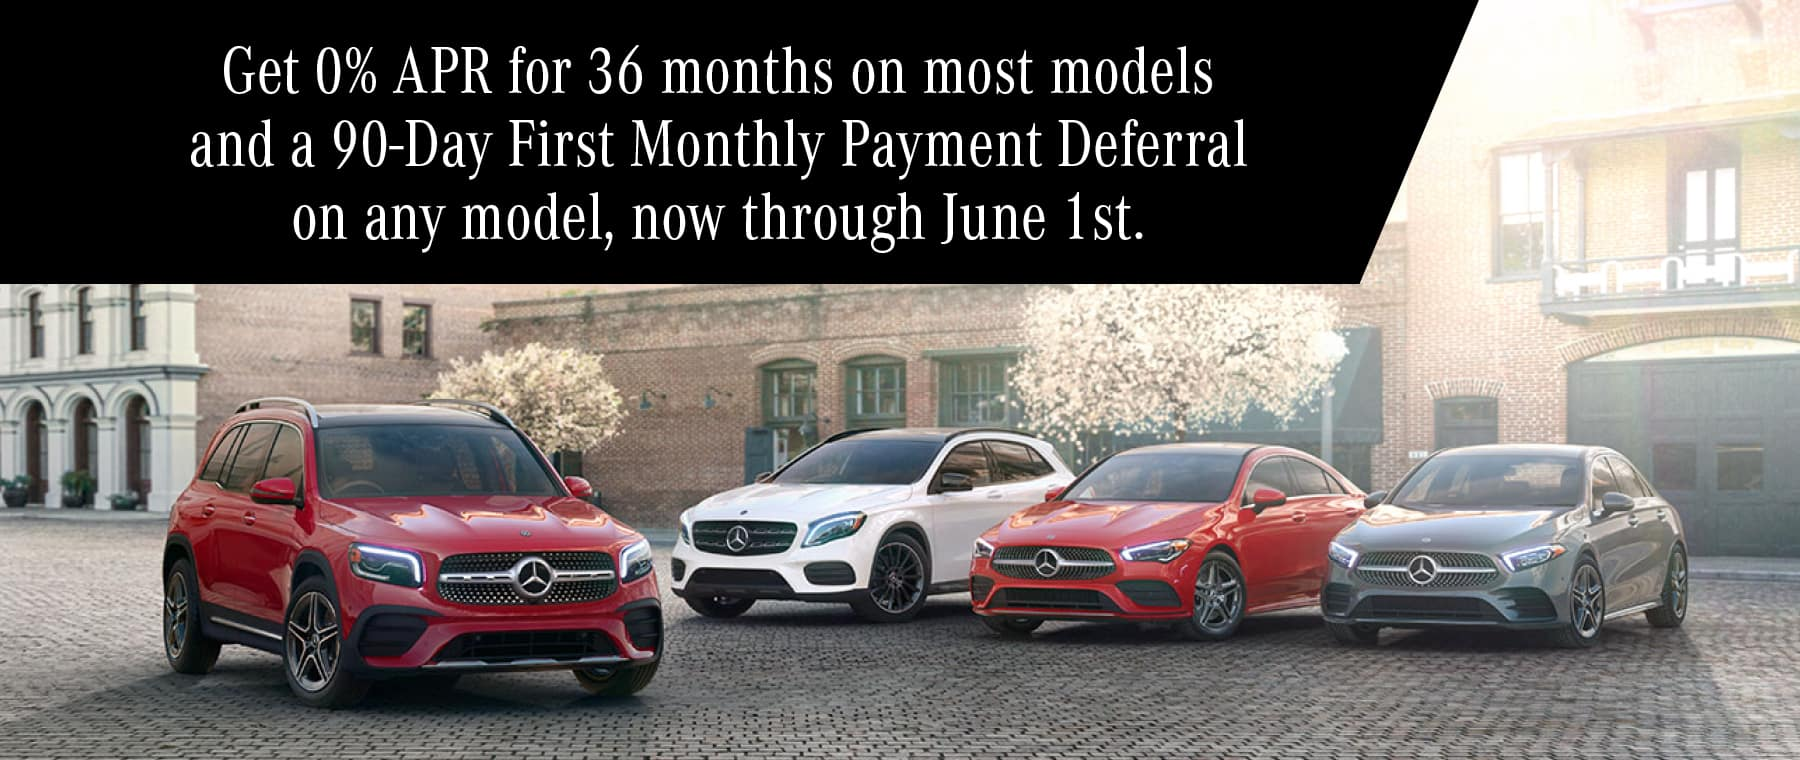 0% APR Plus no Payments for 90 Days on Mercedes-Benz Vehicles at Smail Mercedes-Benz